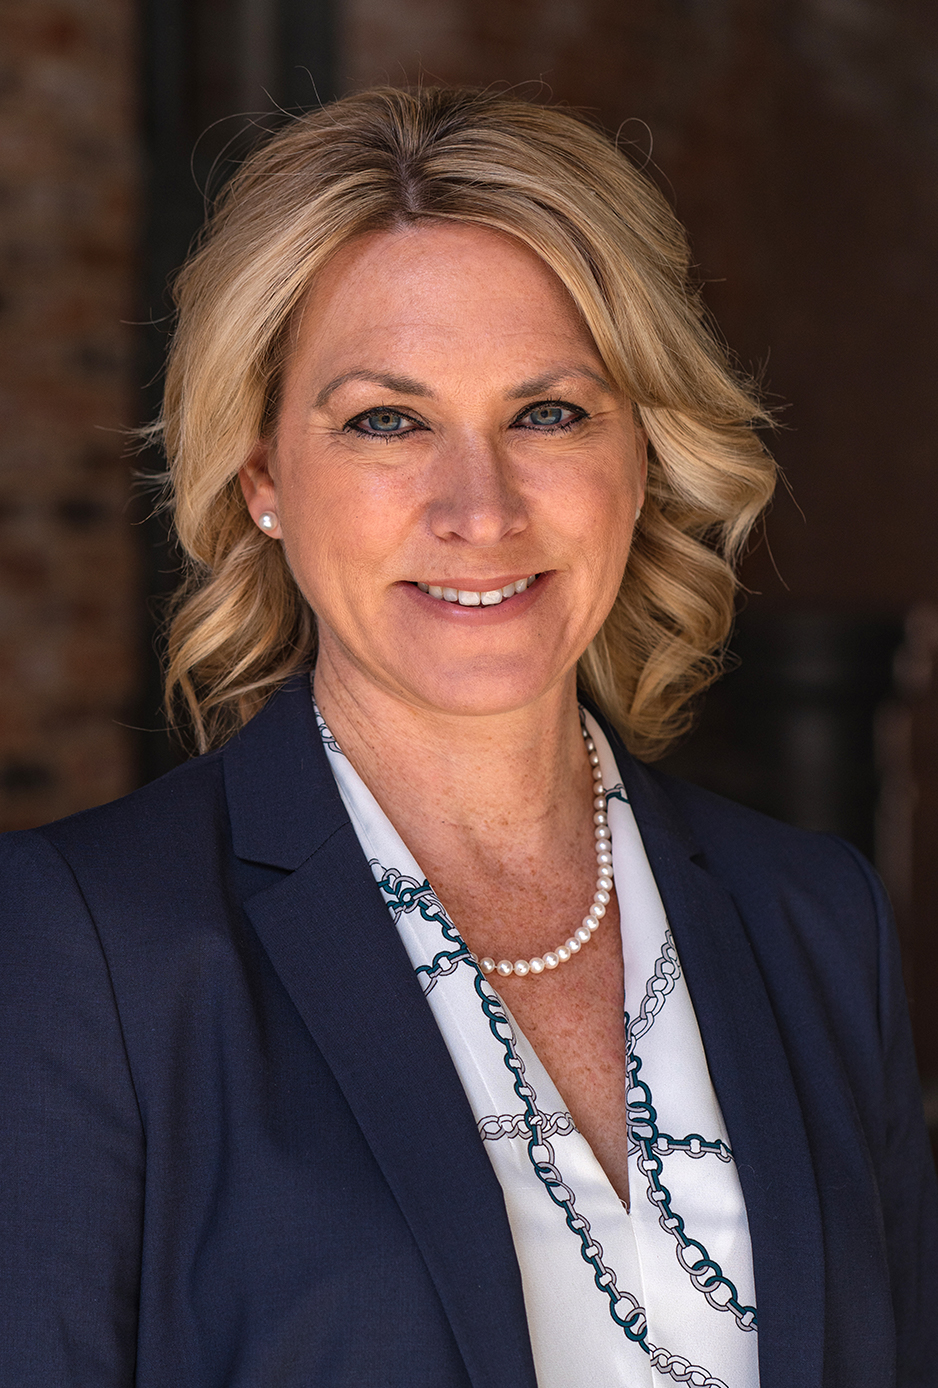 Photo of Susan M. Hess, Attorney and Shareholder at Hammer Law Offices in Dubuque, Iowa